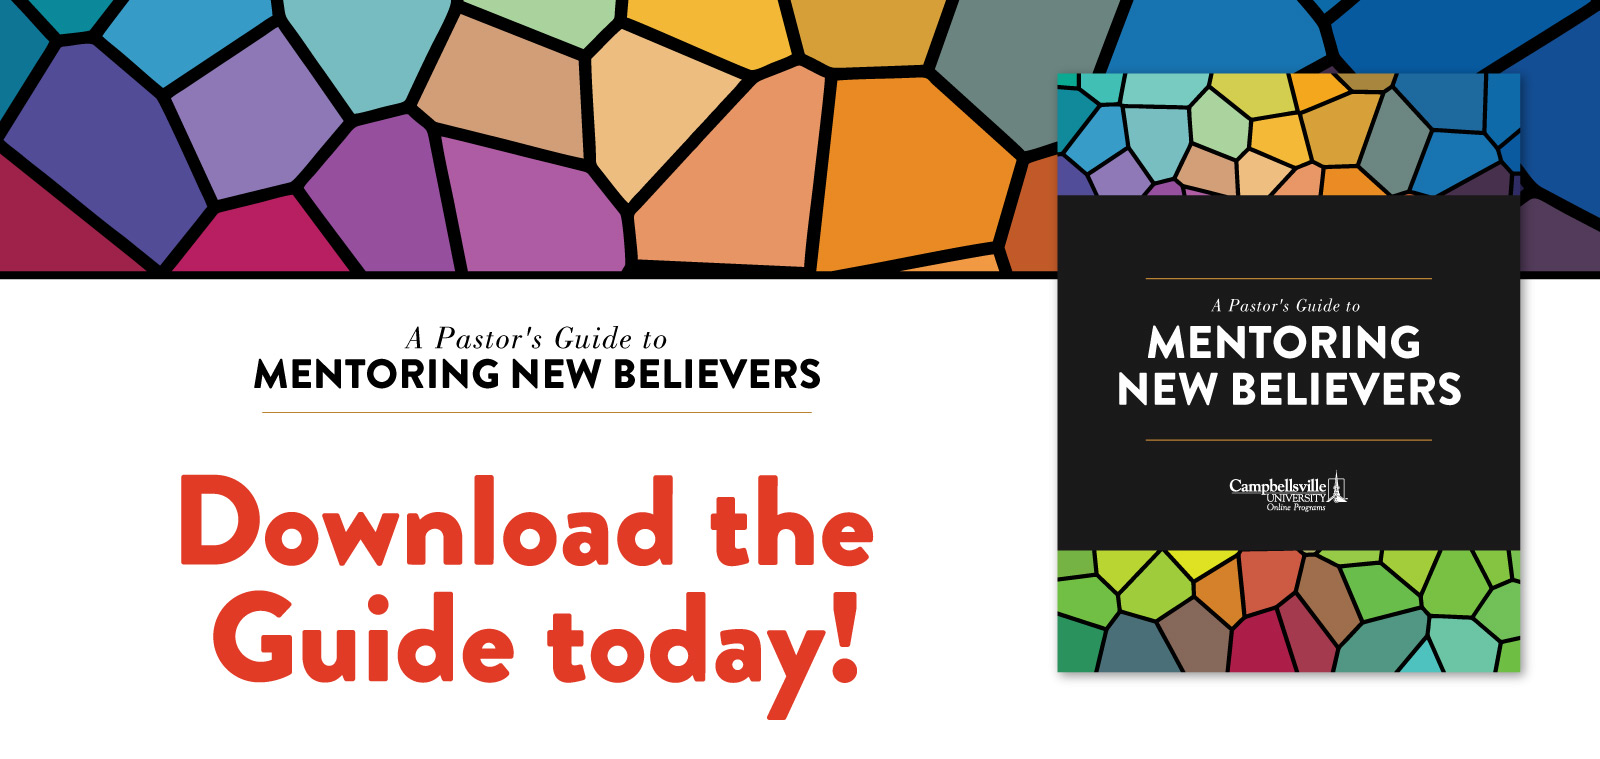 A Pastor's Guide to Mentoring New Believers - Download the Guide today!